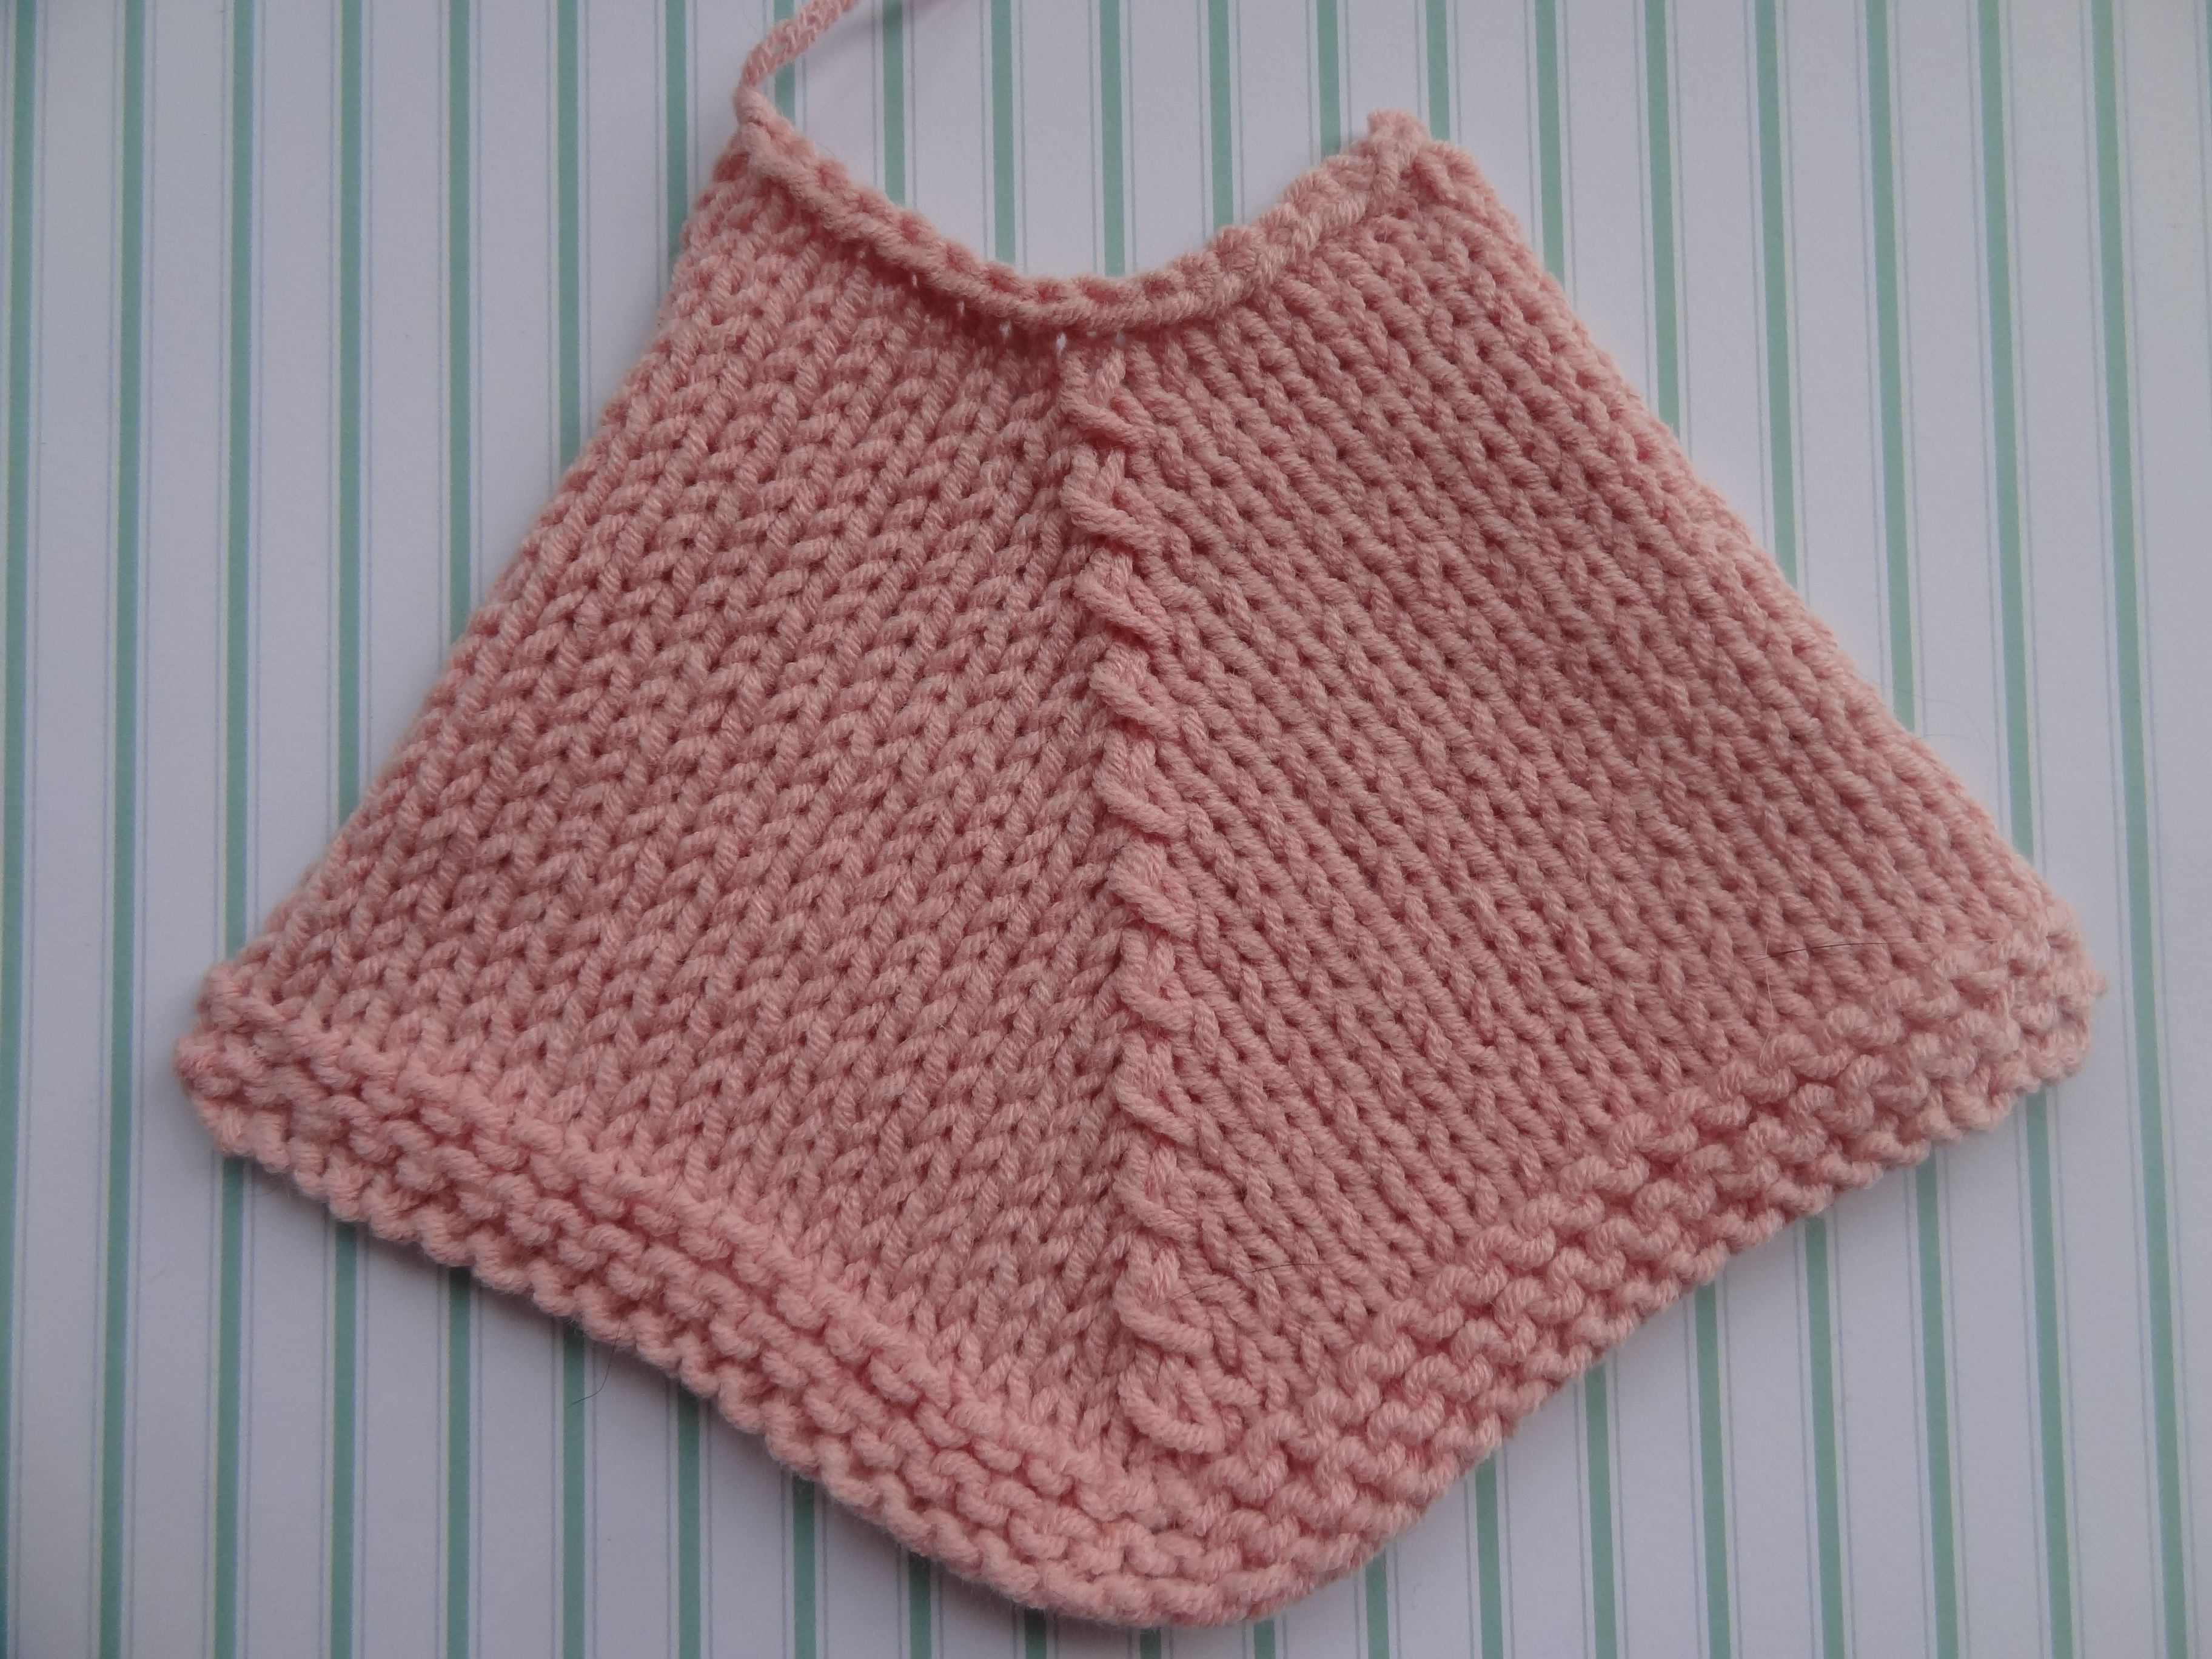 Knitting Decreases K2tog : Sl k tog psso knitted double decrease useful knitting